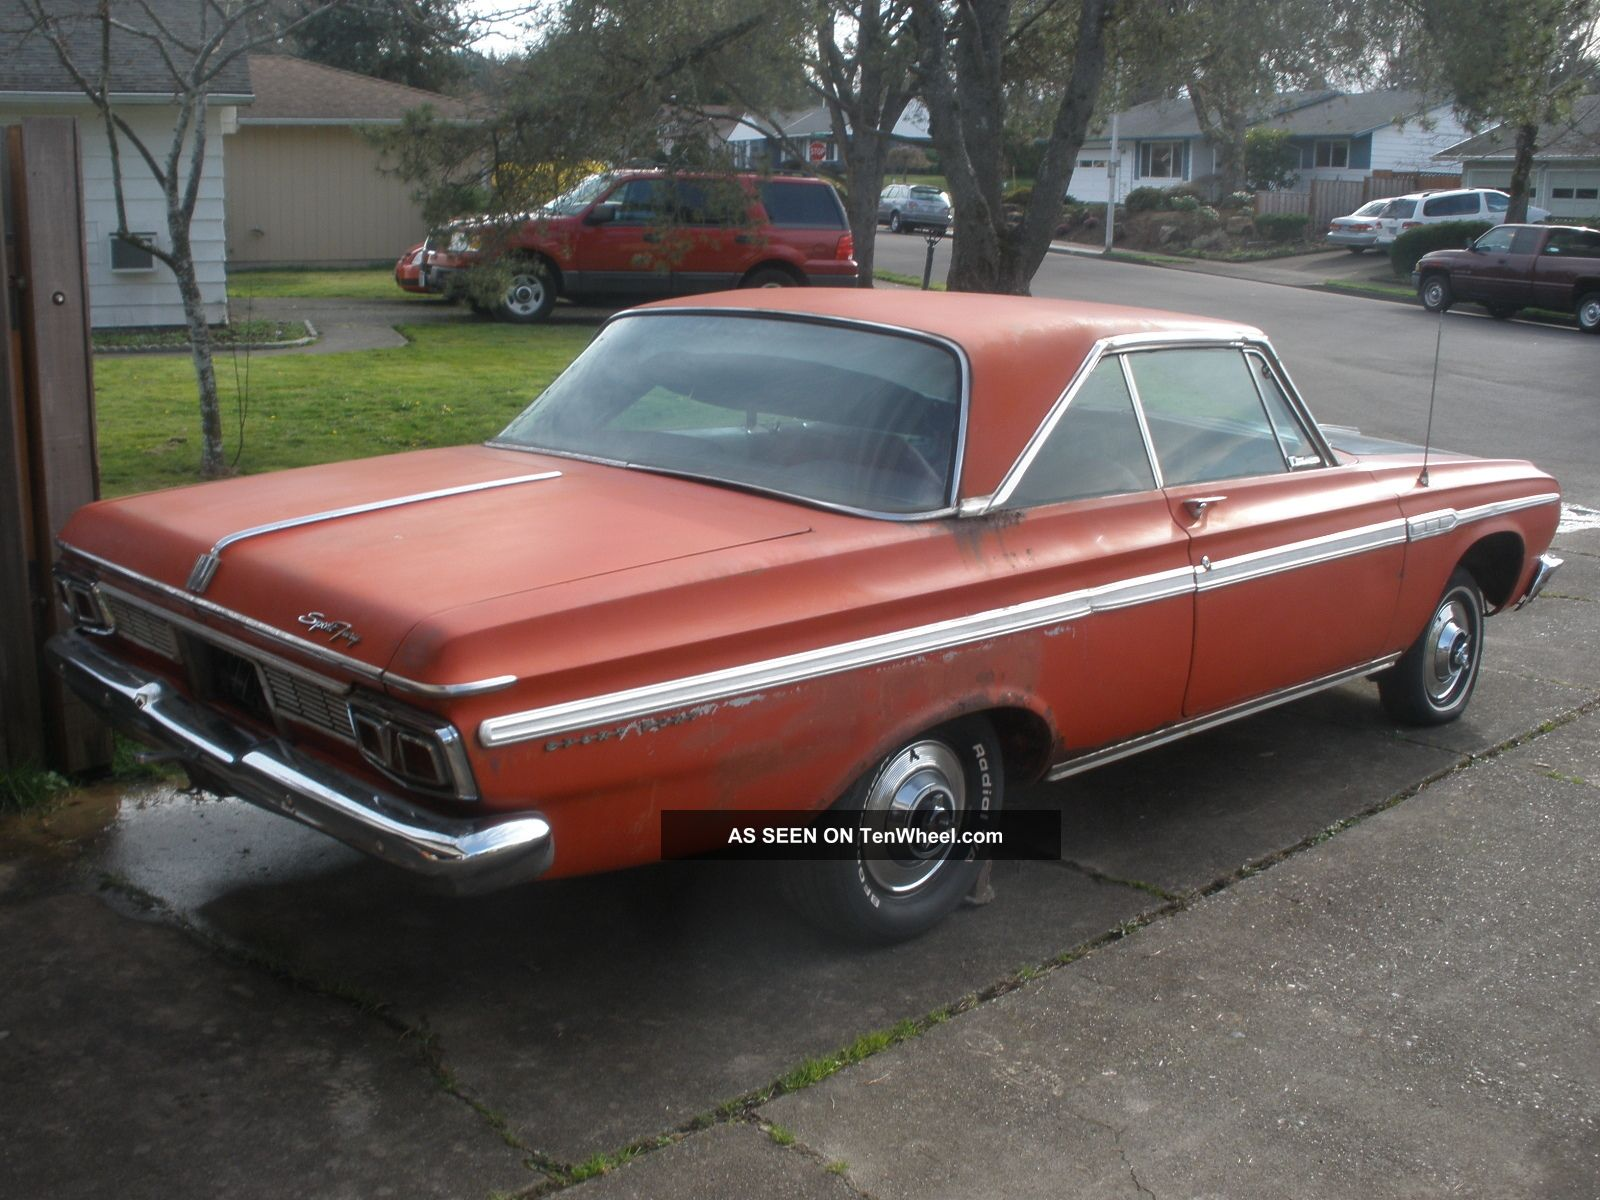 1964 Plymouth Sport Fury Wiring Diagram List Of Schematic Circuit 2001 Chevy Monte Carlo 383 4 Speed Rh Tenwheel Com